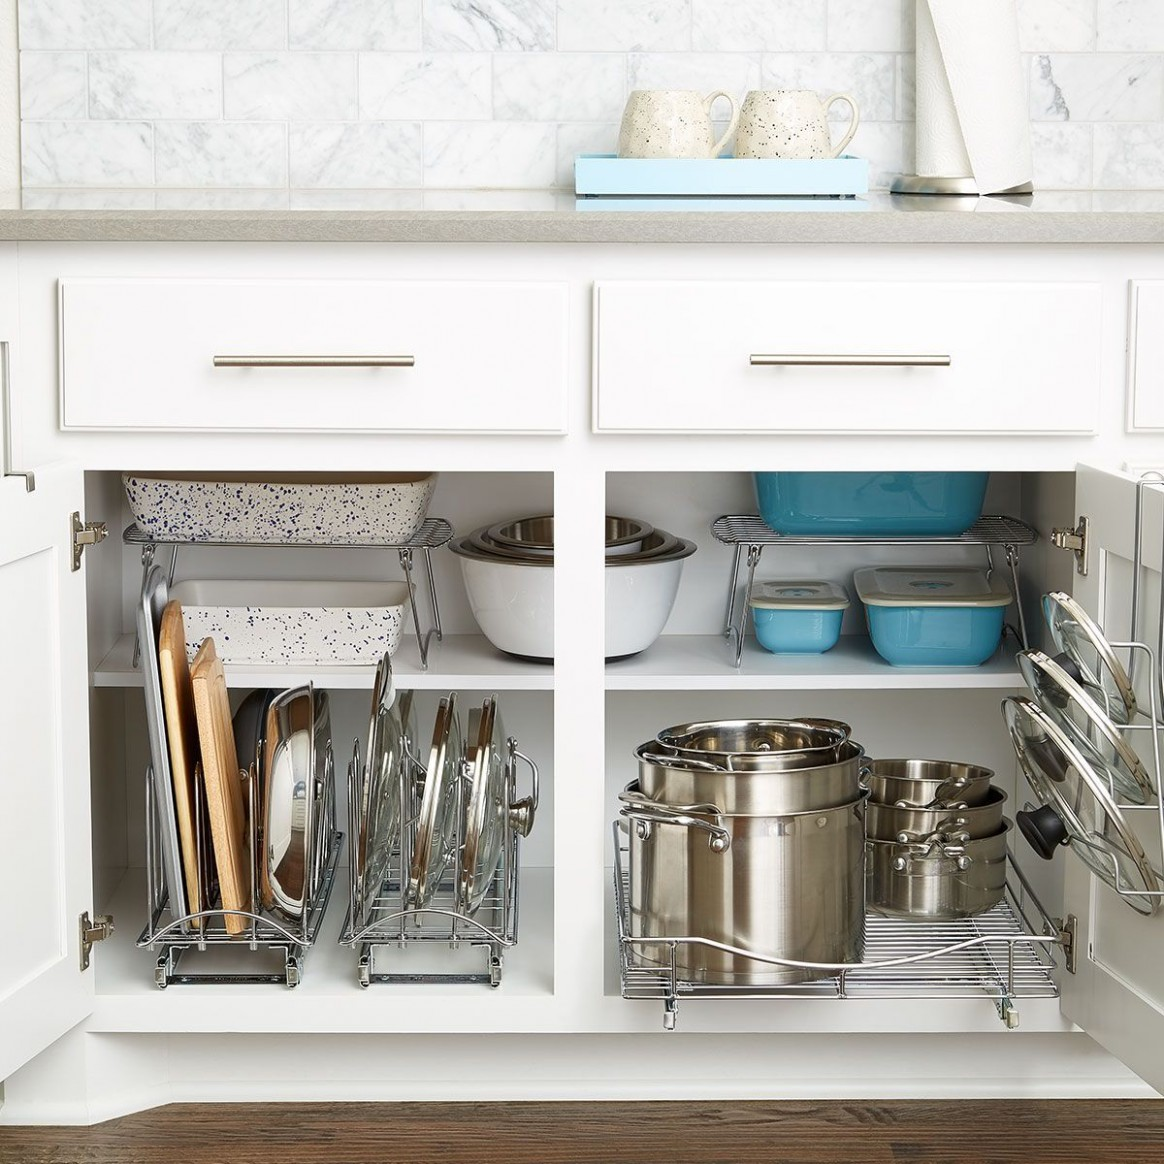 When it comes to lower cabinet organization in your kitchen, look  - How To Place Items In Kitchen Cabinets